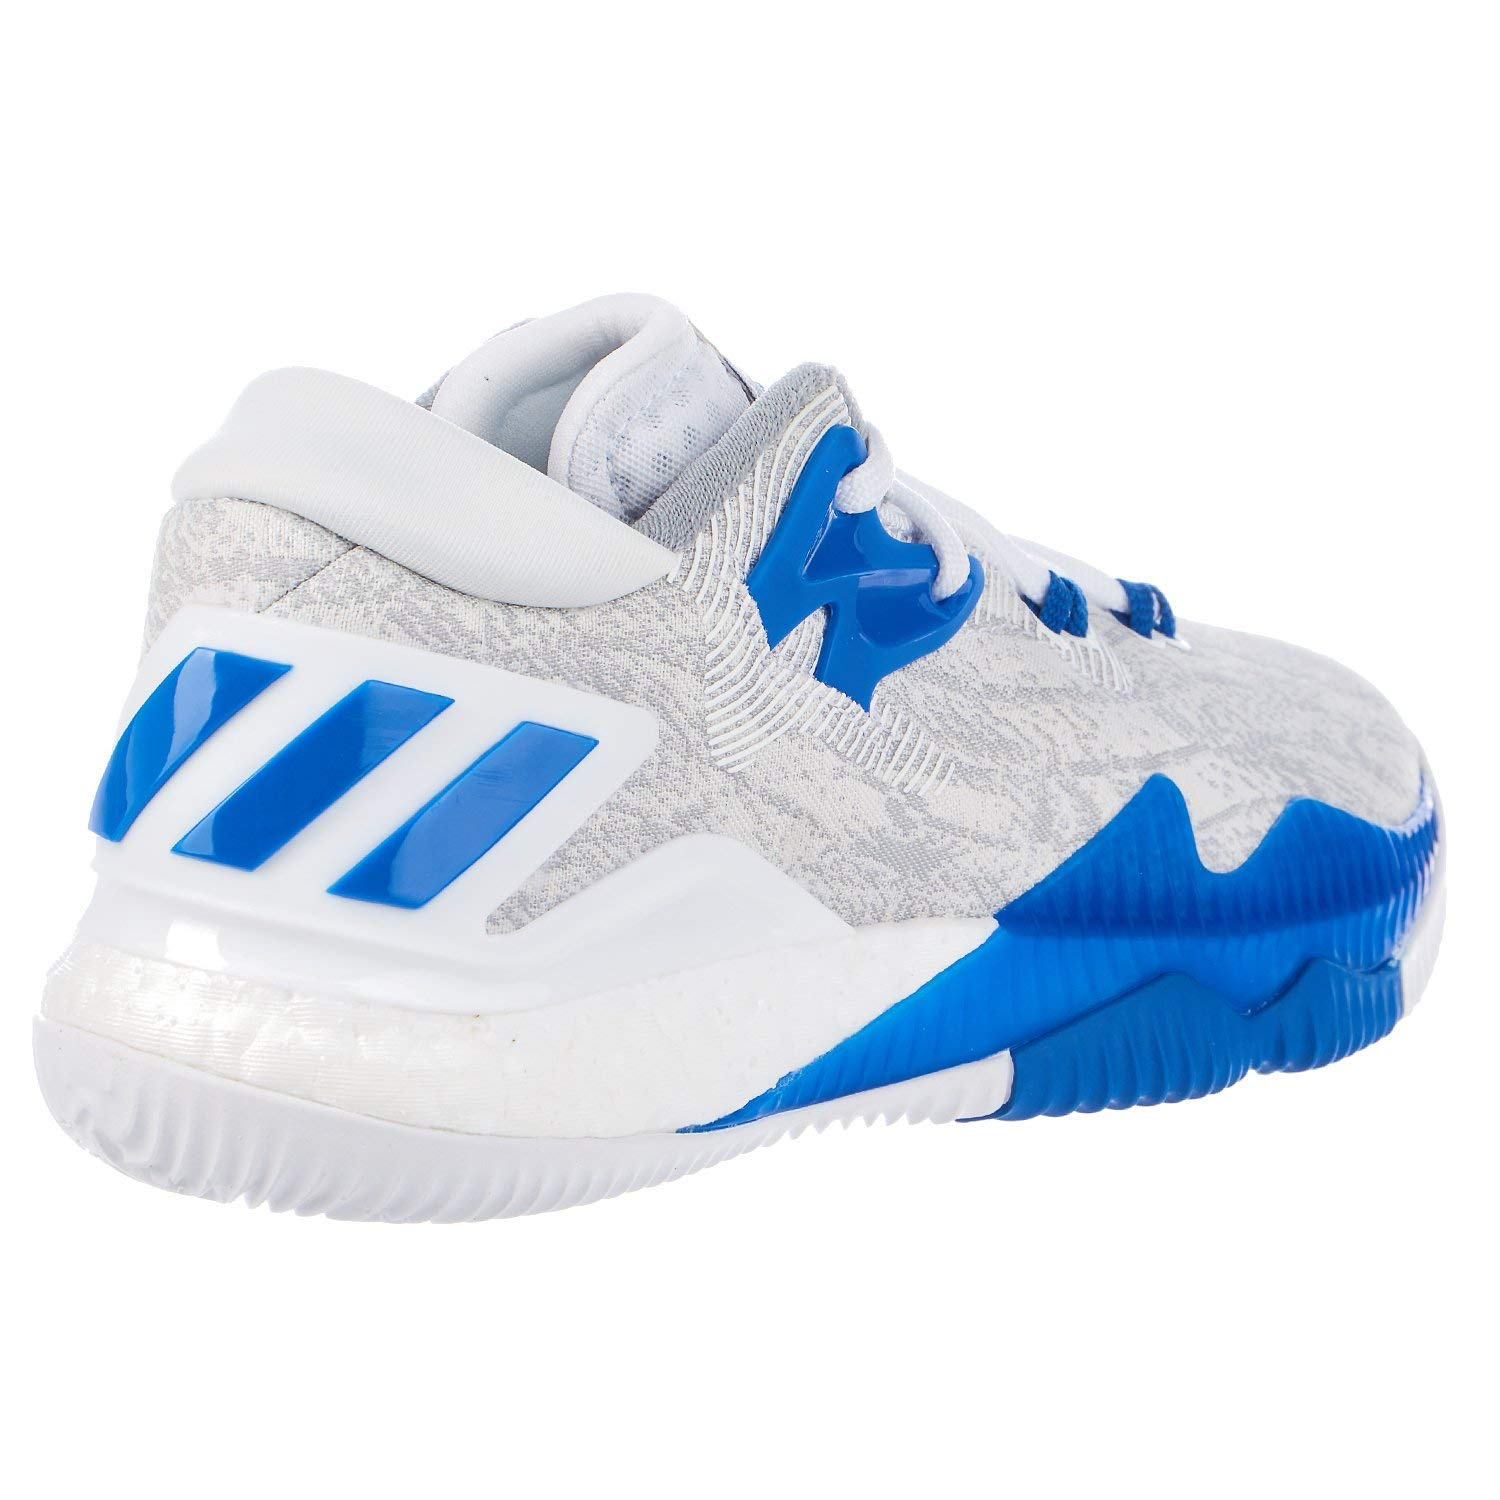 adidas Crazylight Boost Low 2016 Shoes Boys Running White FTW//Satellite//Light Onix 7